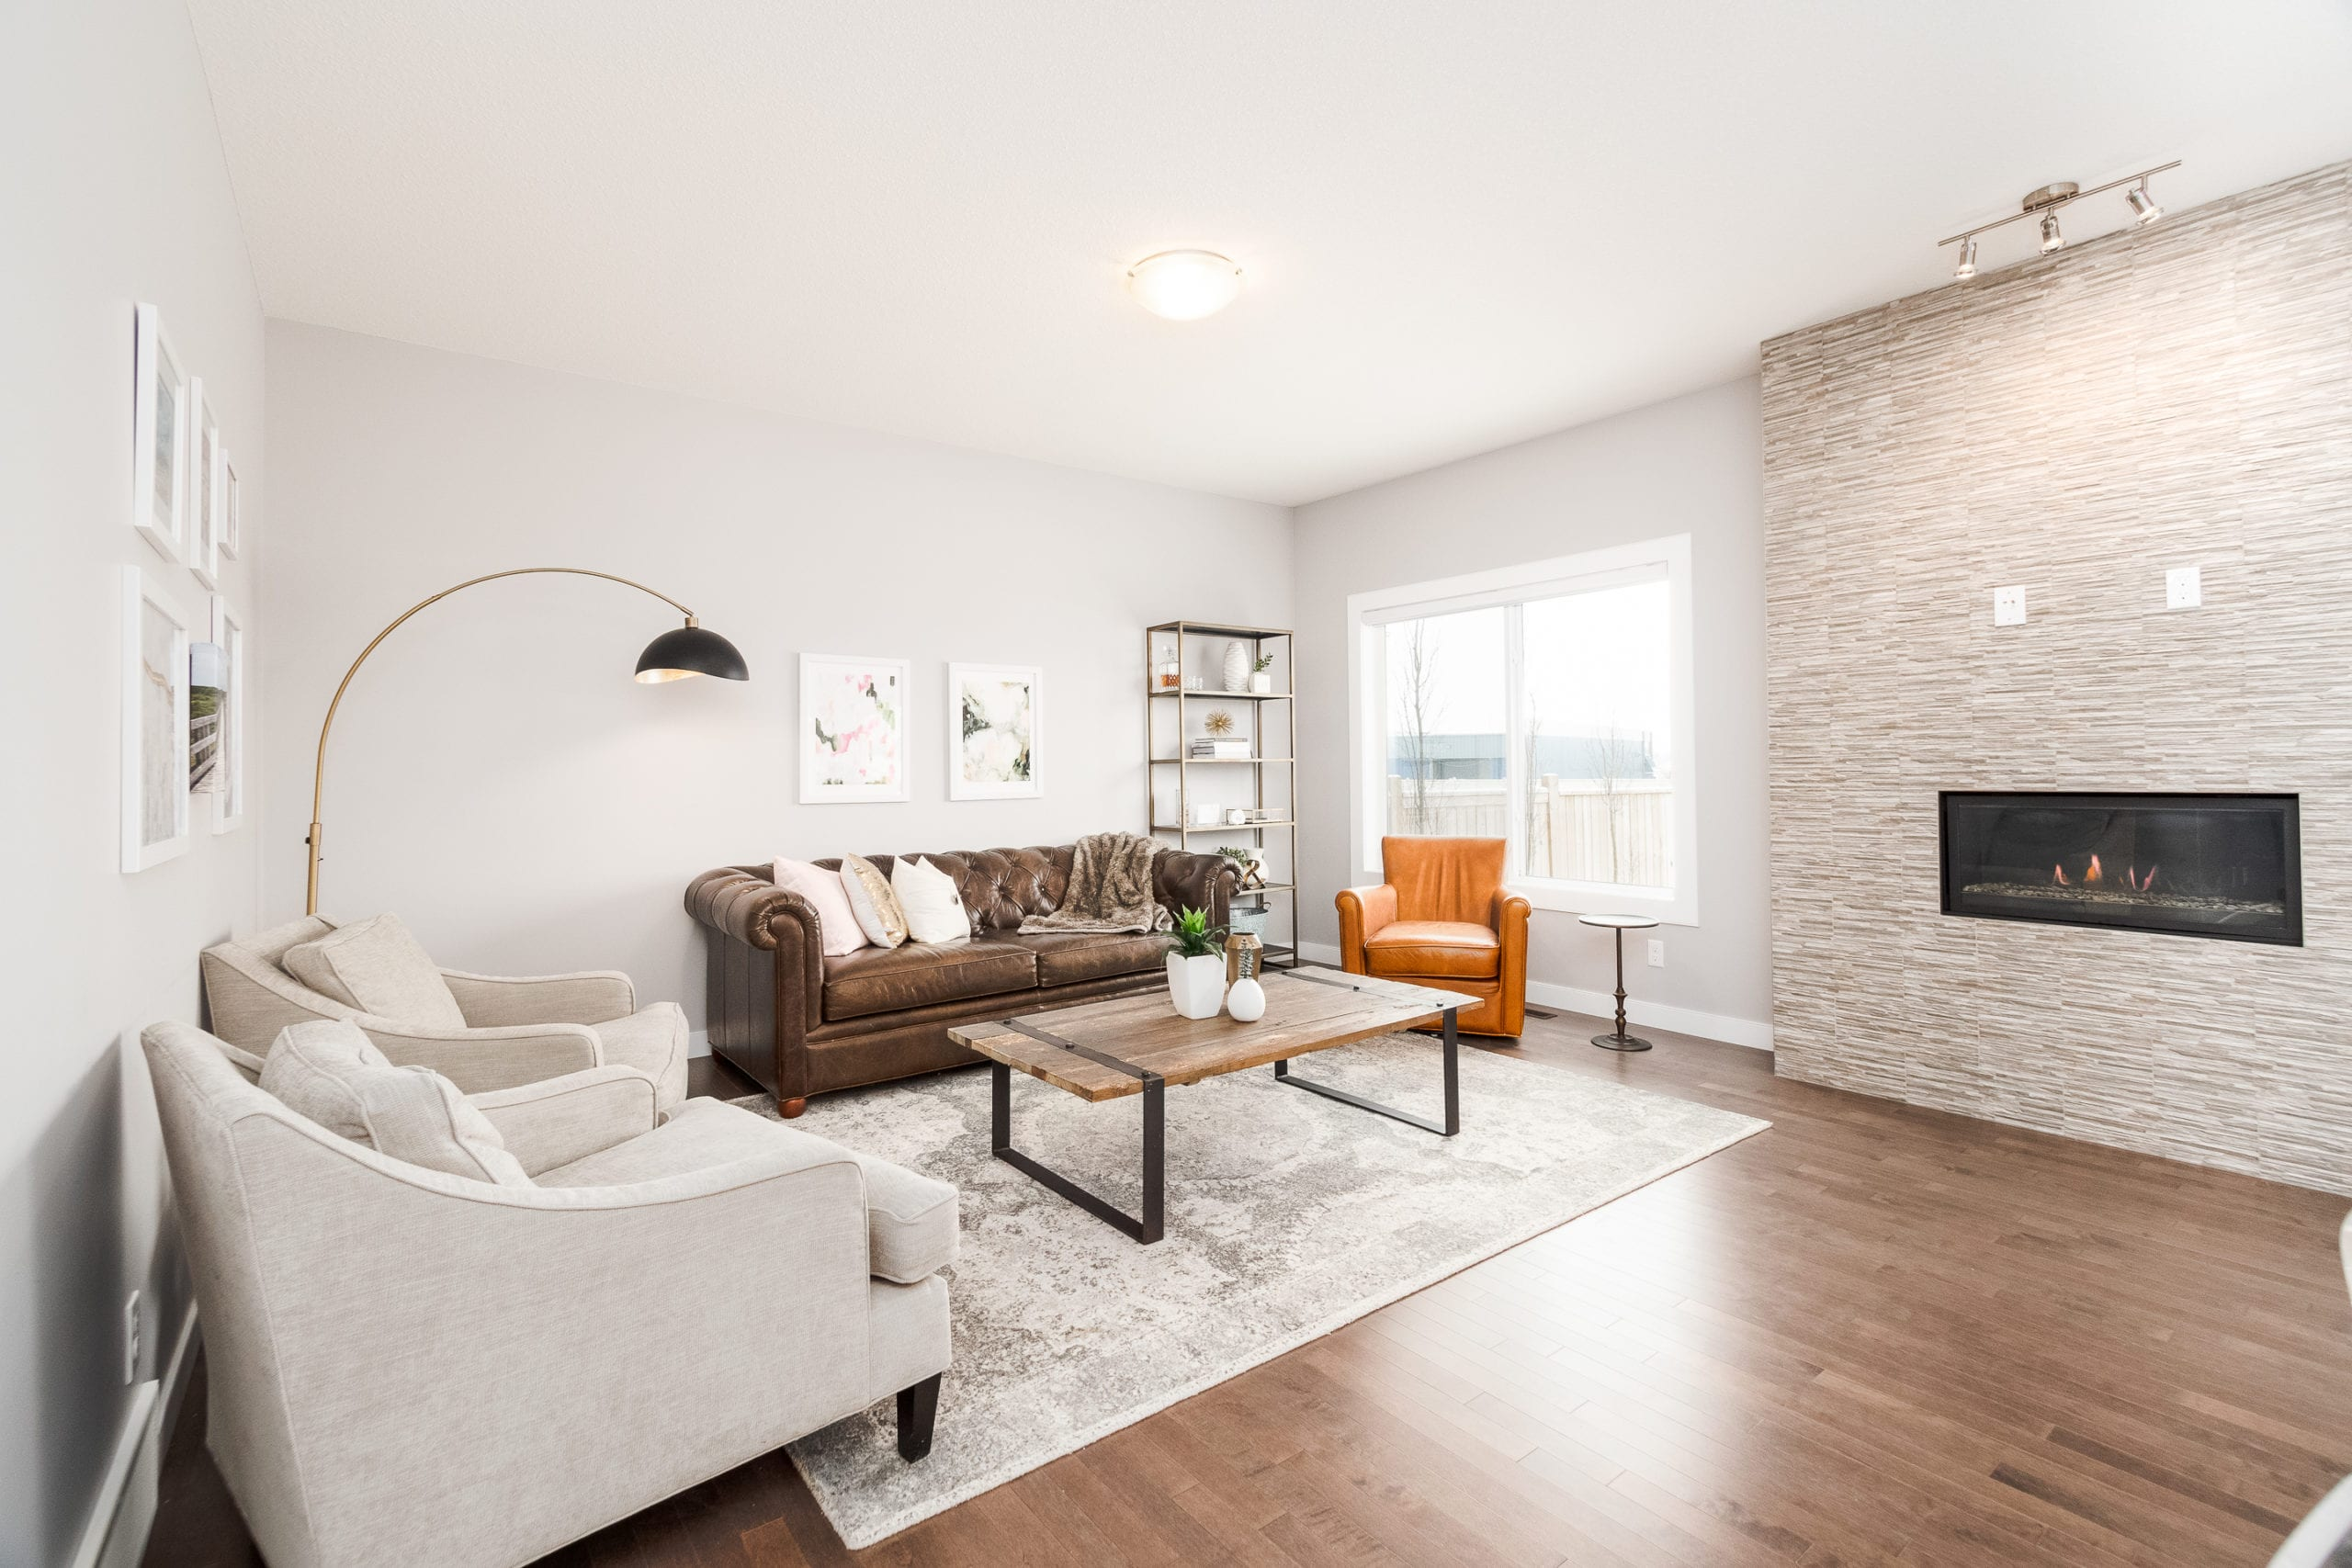 Hello Gorgeous - 1306 Kings Heights Way SE, Airdrie AB. - Tara Molina Real Estate (15 of 53)